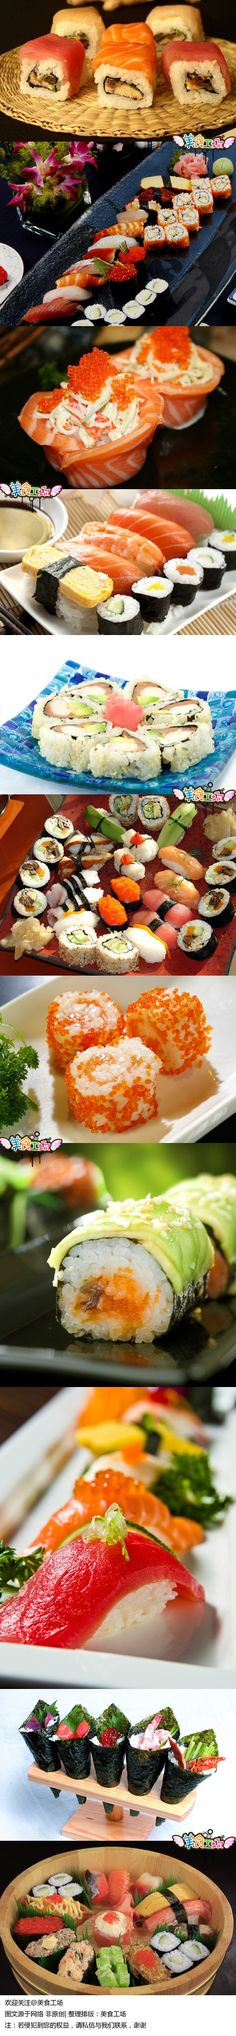 sushi....craving like nobody's business but I can't have it!!!' TORTURE!!! 5 more months!